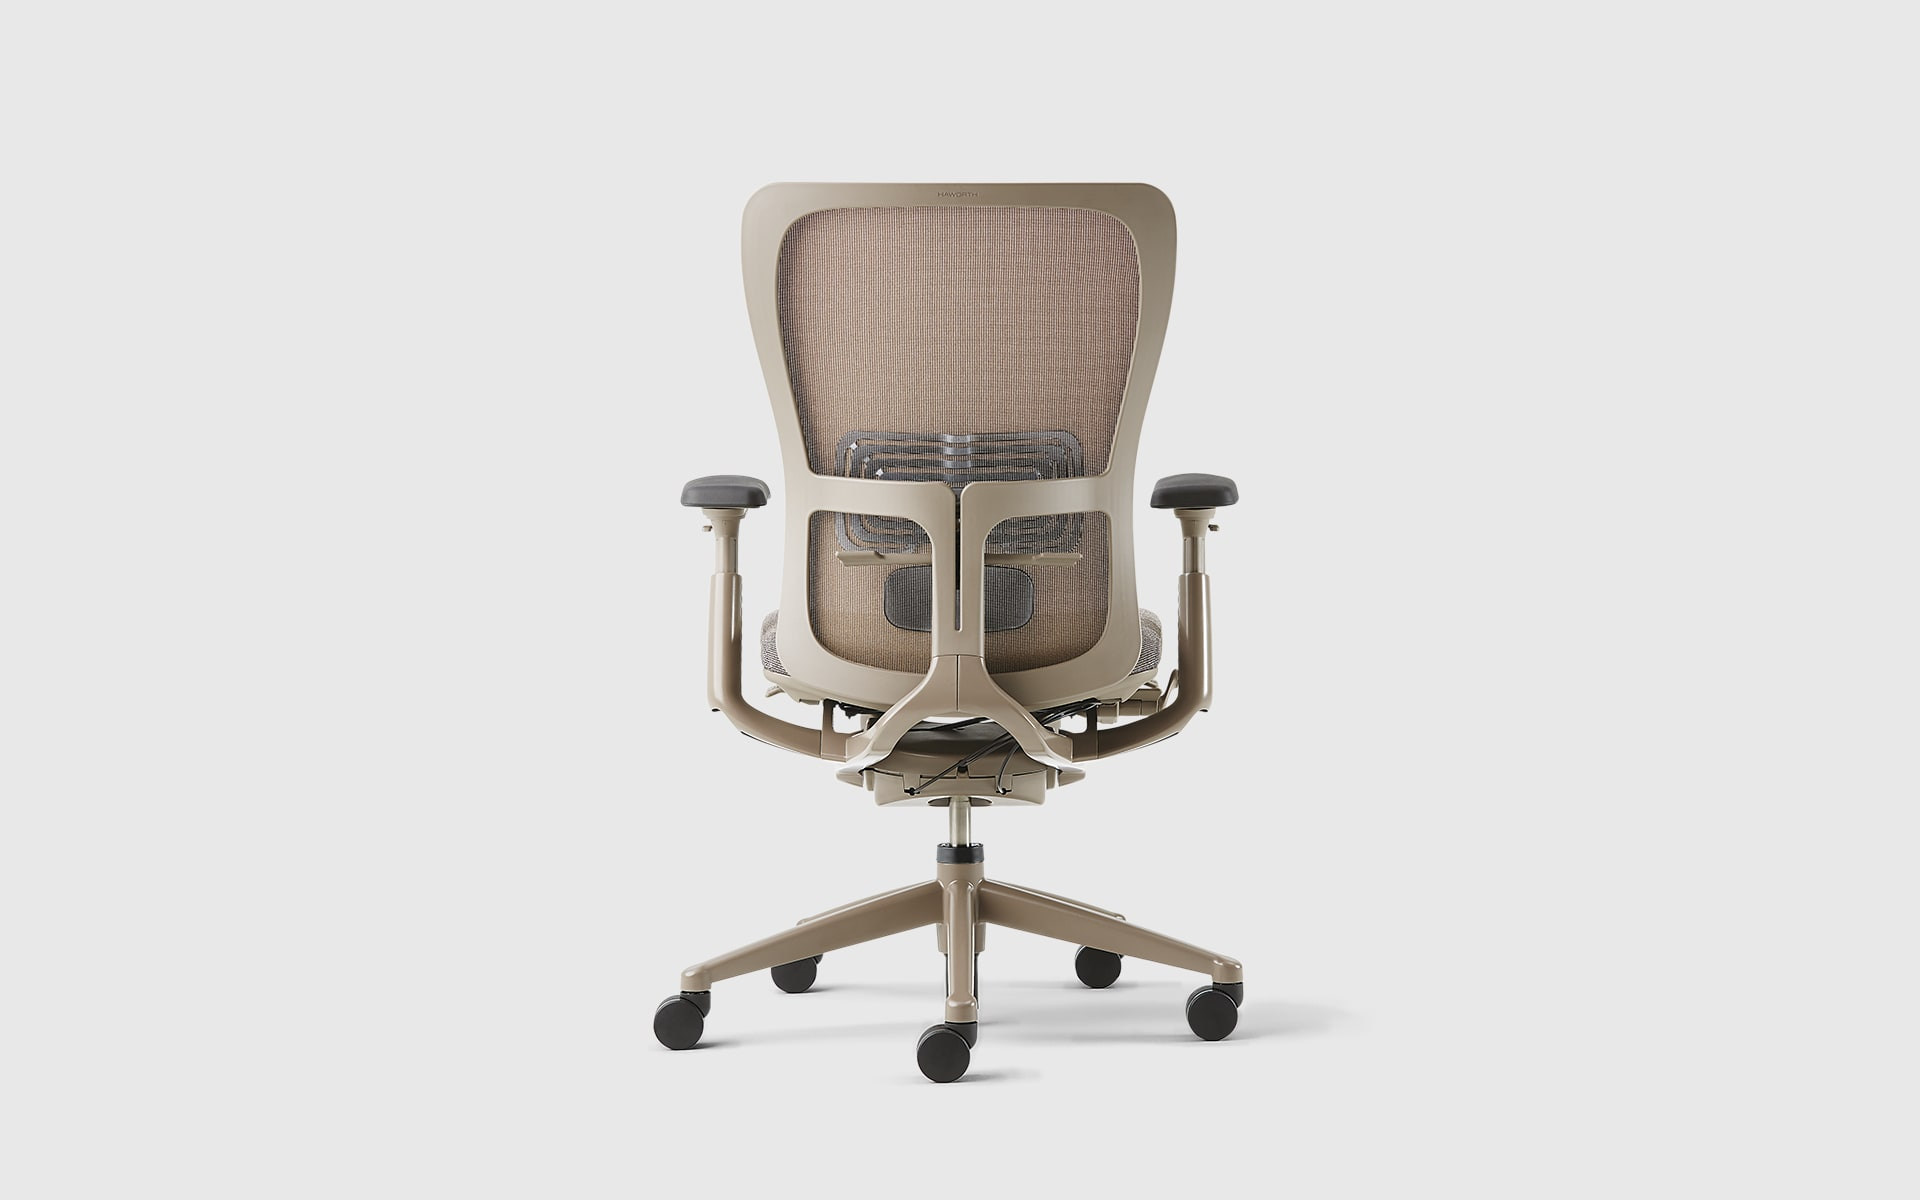 Haworth Zody office chair by ITO Design with brown backrest